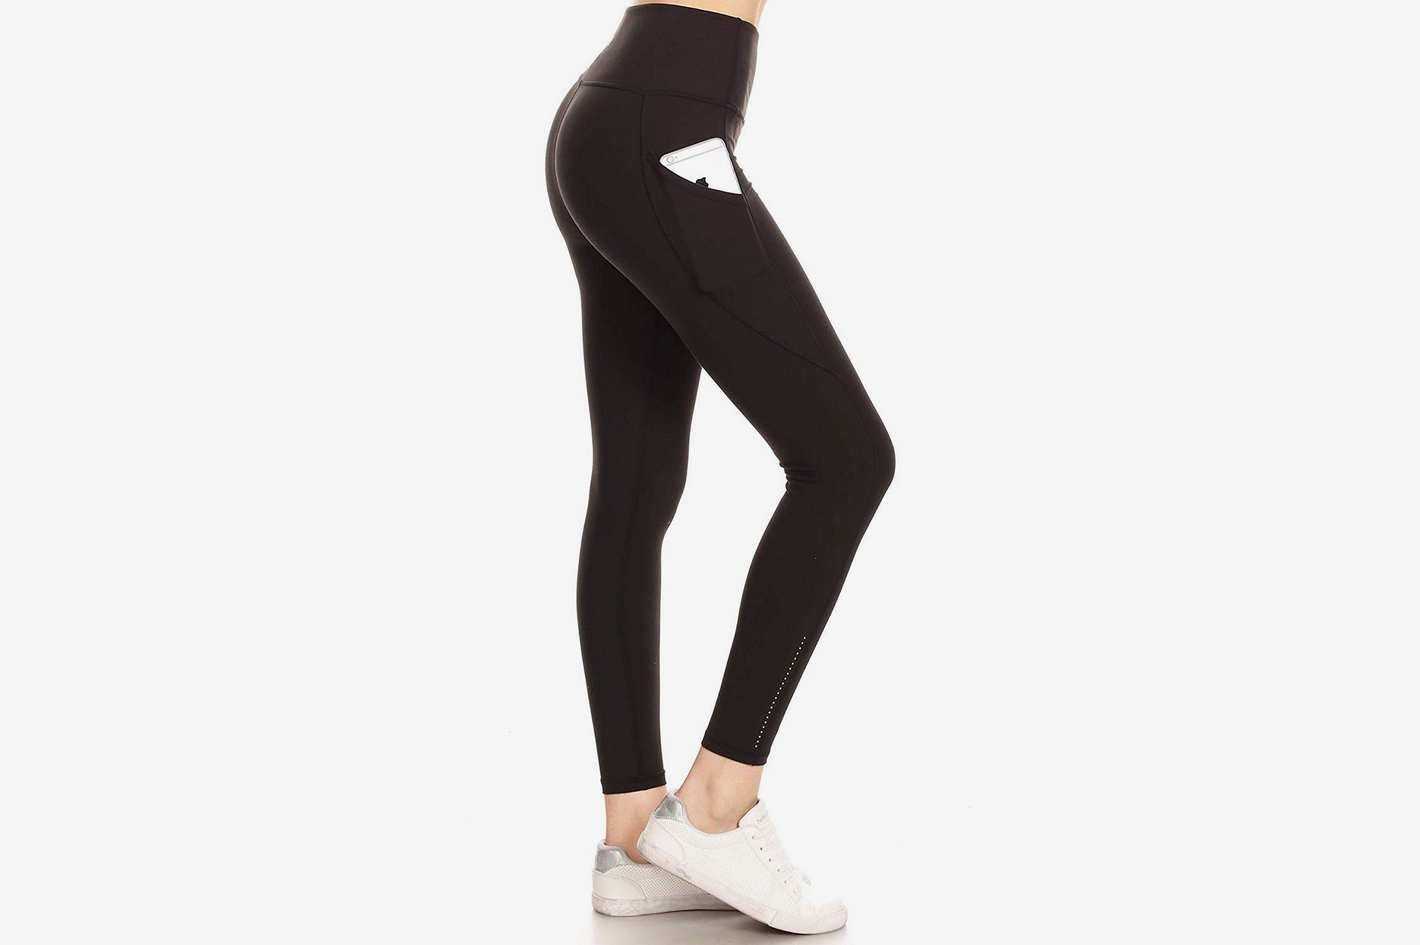 The Best Yoga Pants For Women According To Hyperenthusiastic